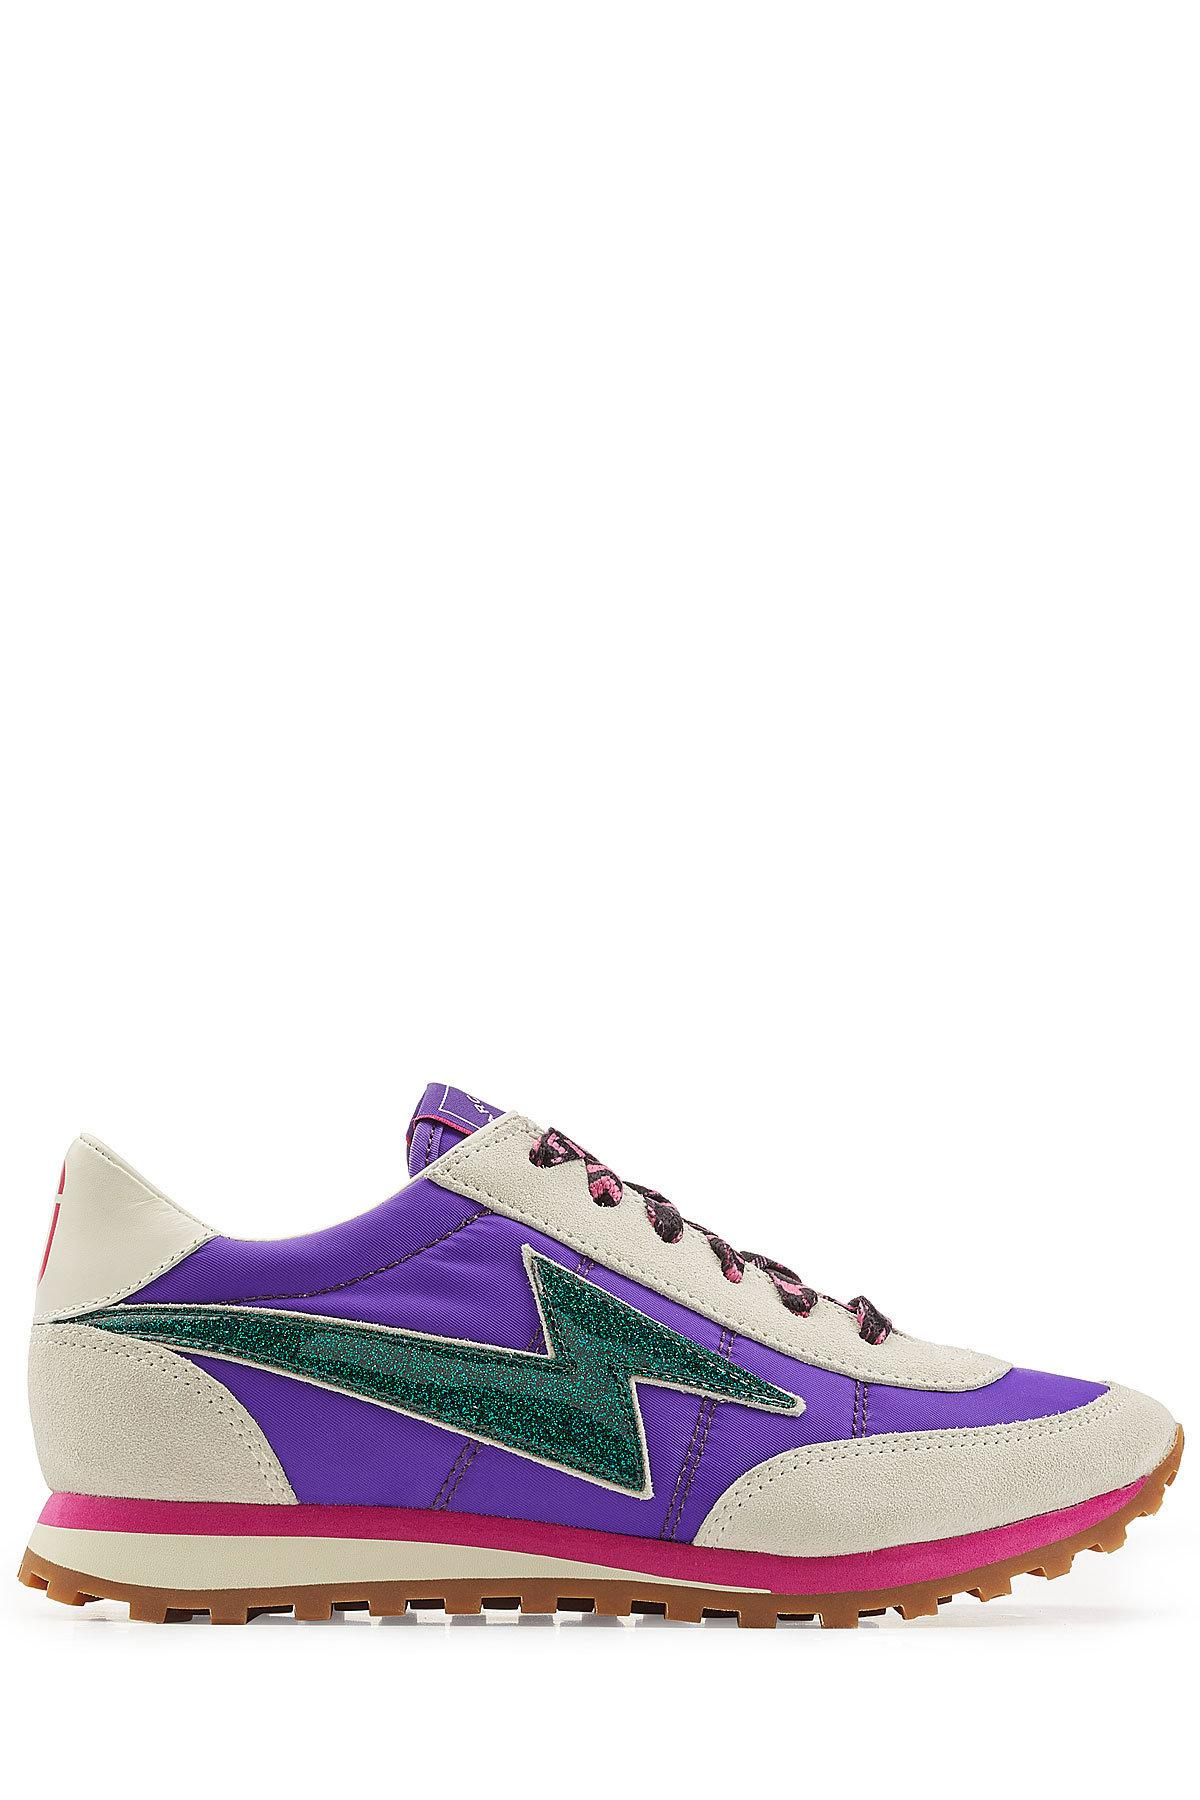 Sale Online Shop Marc Jacobs Nylon and Suede Sneakers Clearance Deals RqEcqDg